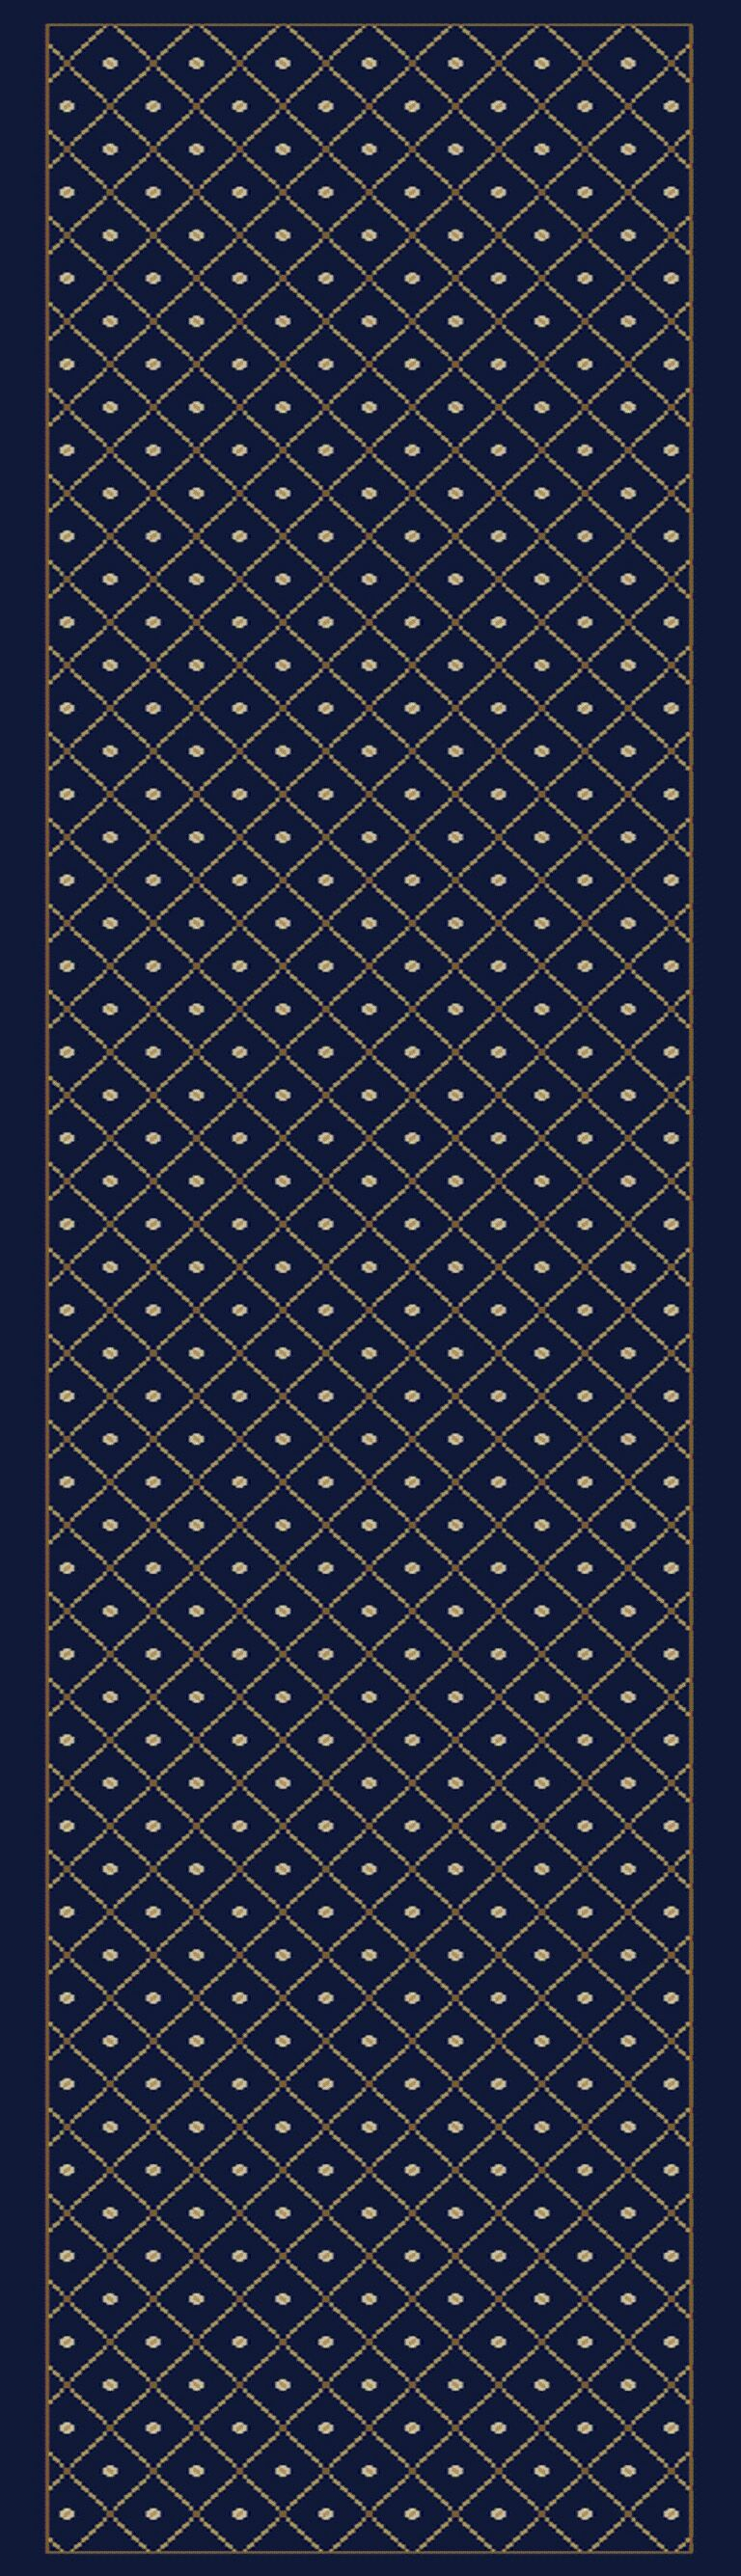 Quill Navy Blue Area Rug Rug Size: Runner 2'2